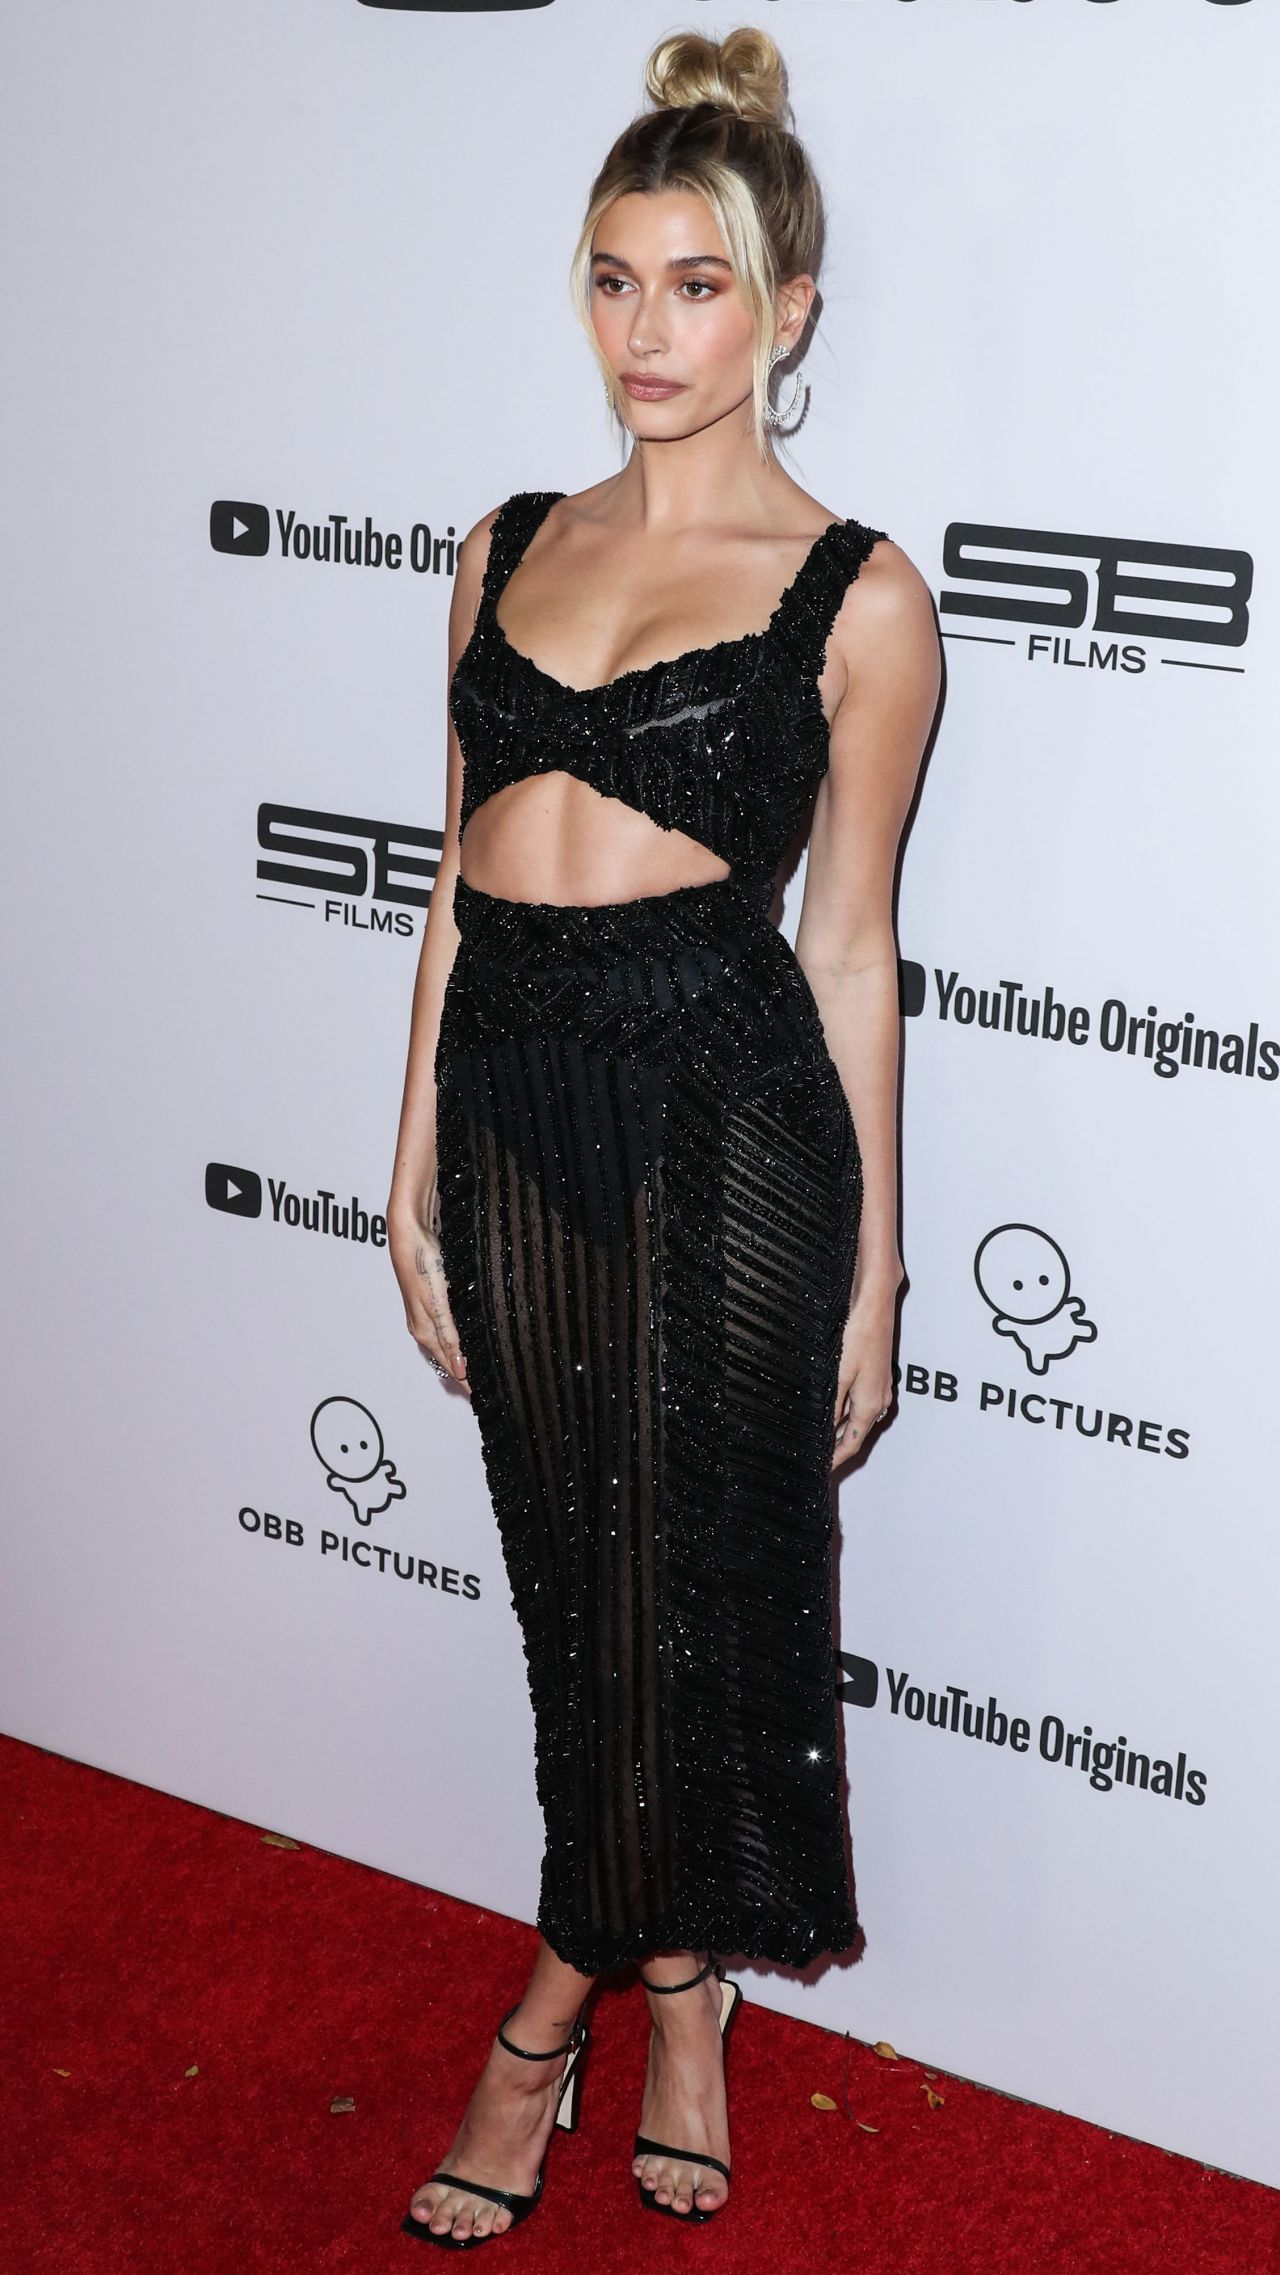 hailey-bieber-in-zuhair-murad-couture-youtube-originals-premiere-of-justin-bieber-seasons